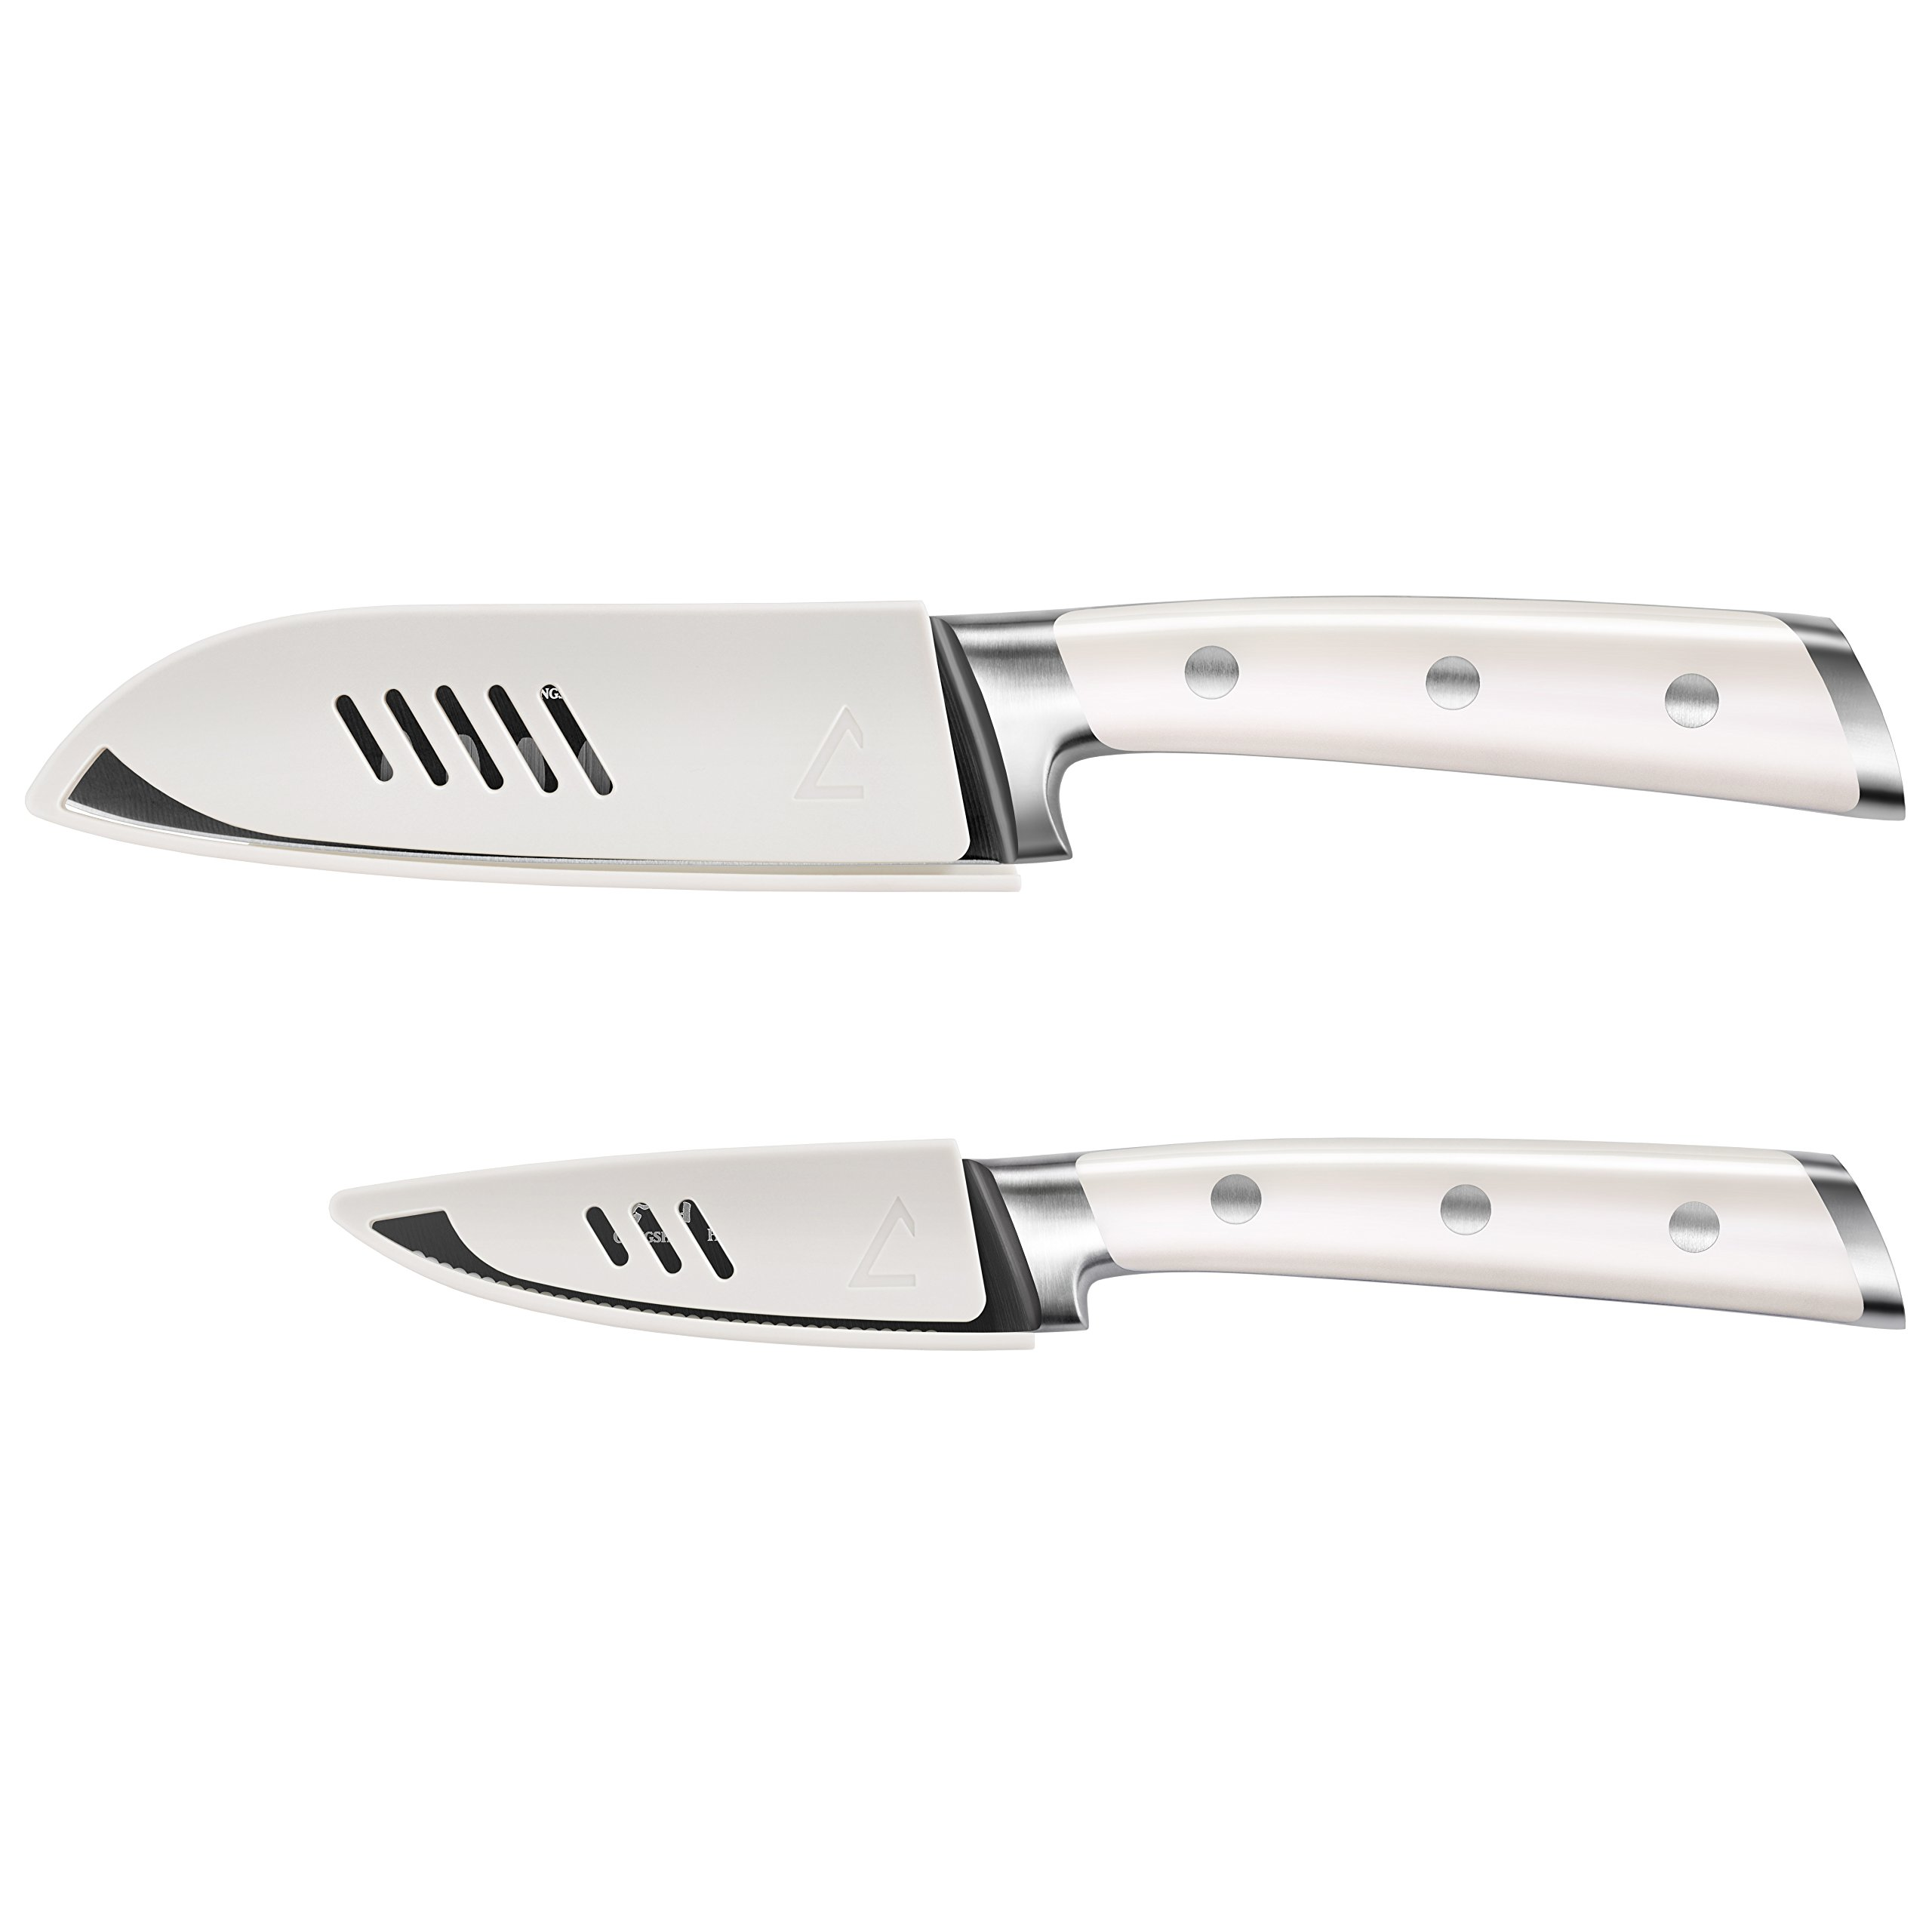 Cangshan S+ Series 1022100 German Steel Forged 2-Piece Titanium Coated Santoku Starter Knife Set with Sheaths, Vanilla White by Cangshan (Image #2)